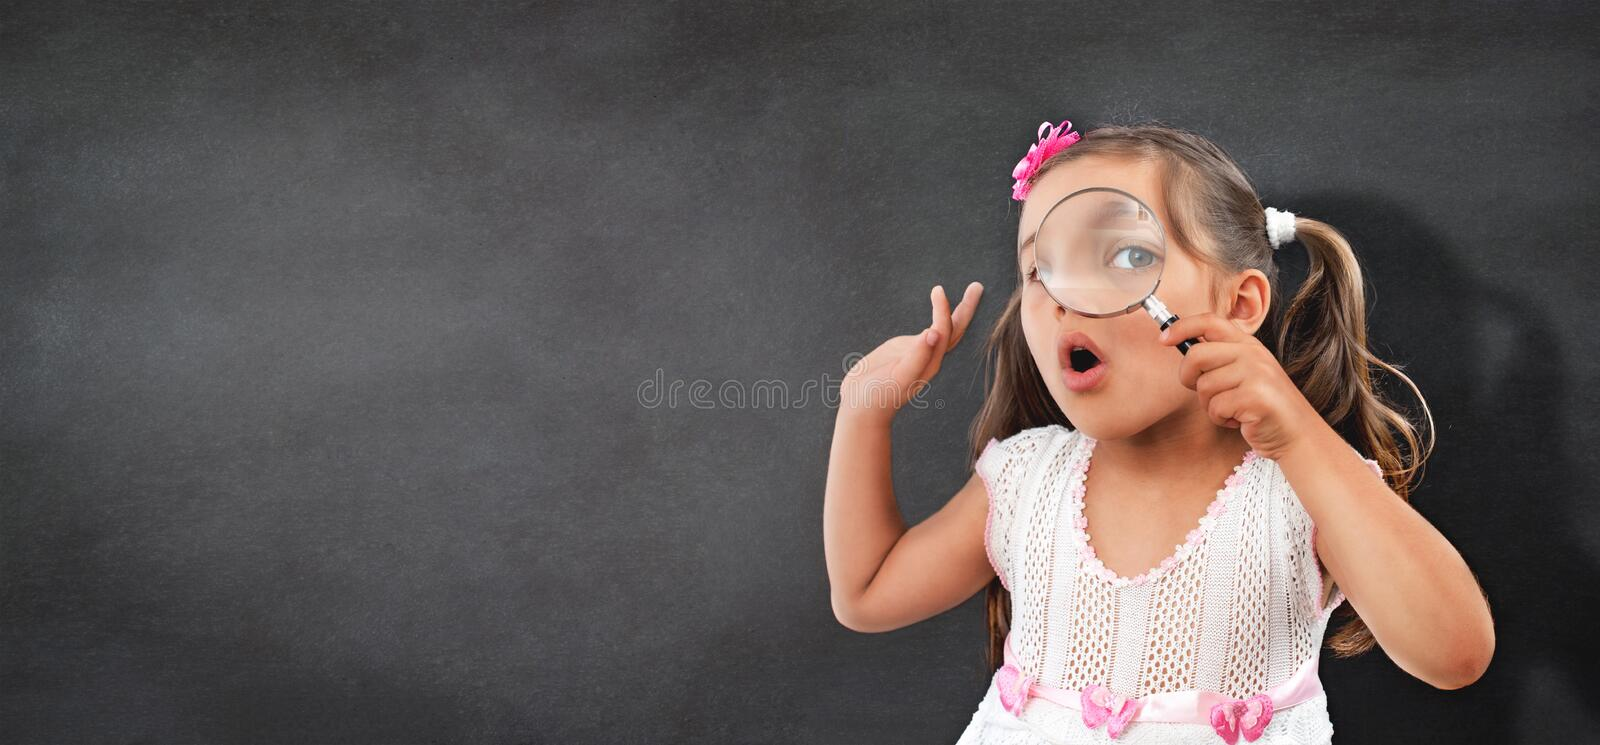 Portrait of Curious Little Child Girl royalty free stock image